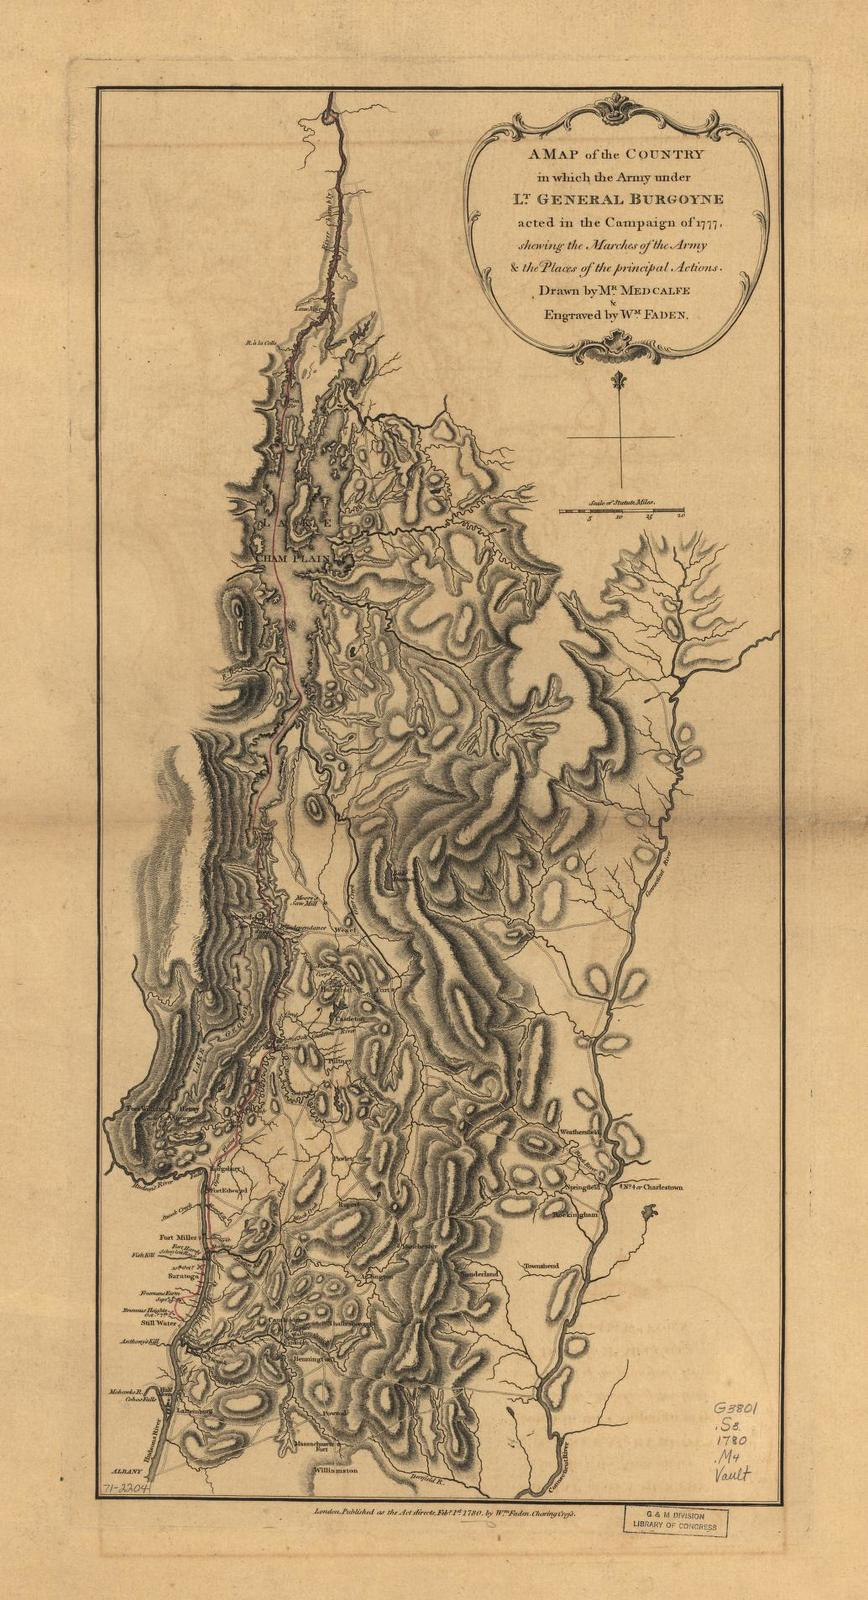 A map of the country in which the army under Lt. General Burgoyne acted in the campaign of 1777, shewing the marches of the army & the places of the principal actions.